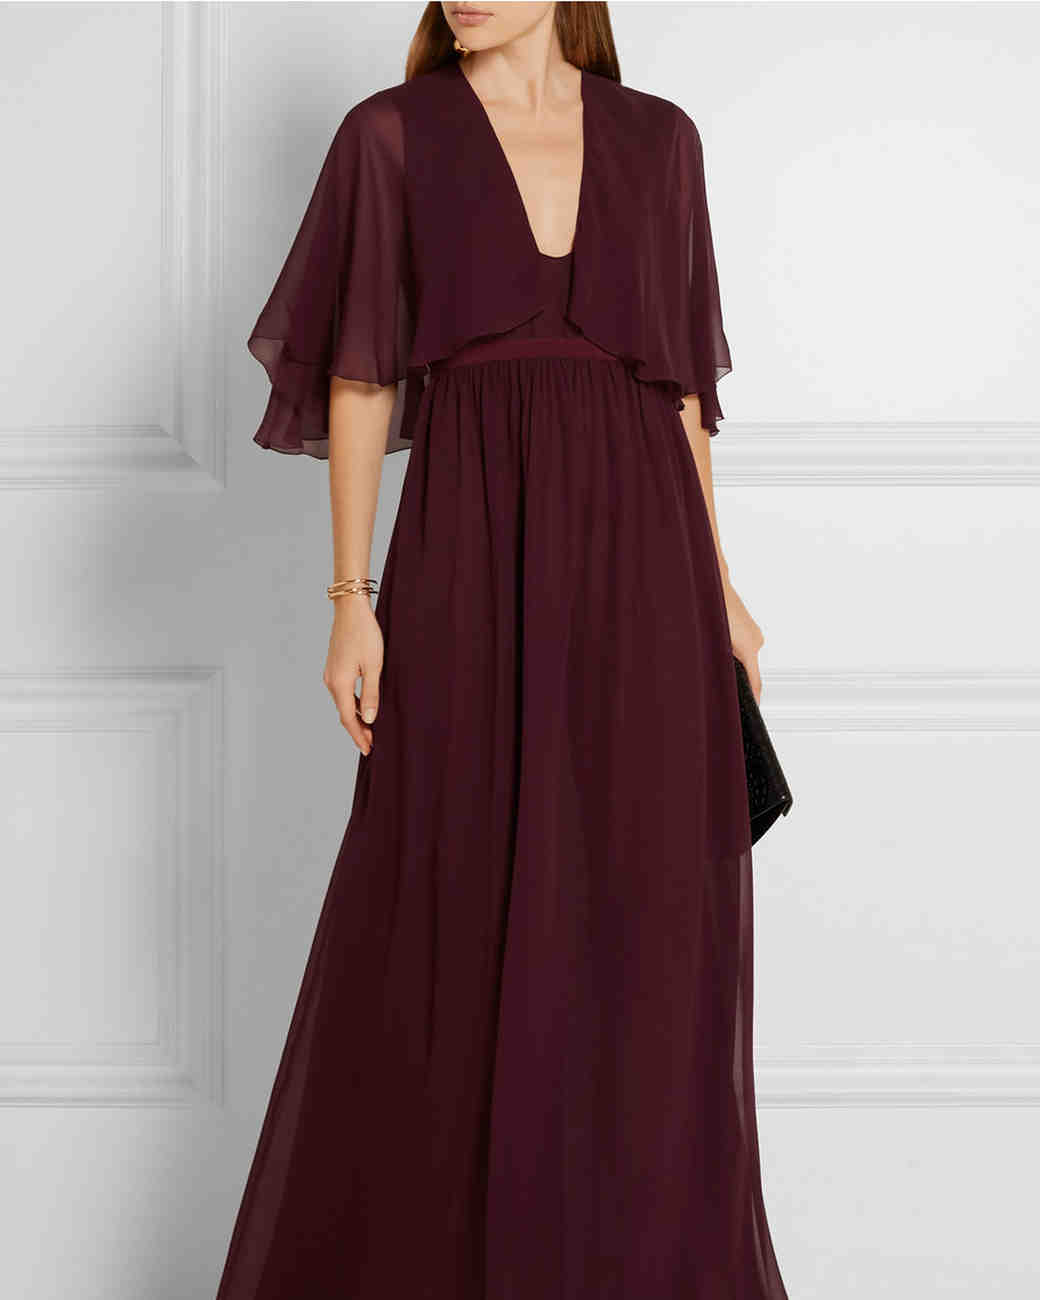 Flowy Wine-Colored Gown